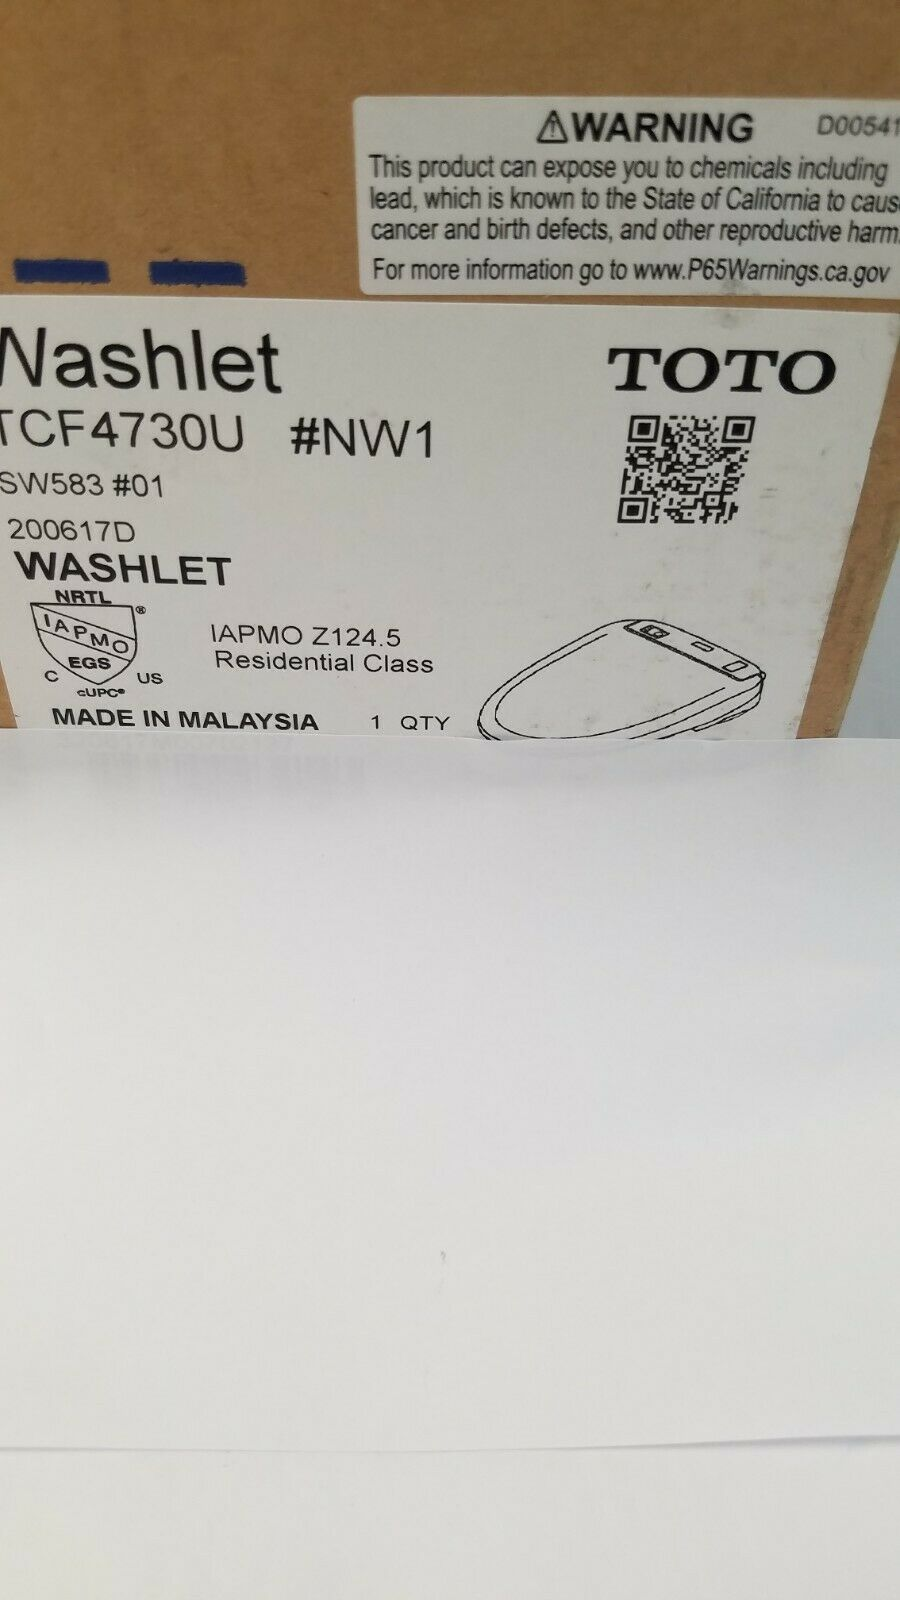 TOTO SW583#01 S350E Electronic Bidet Toilet Seat with Cleans